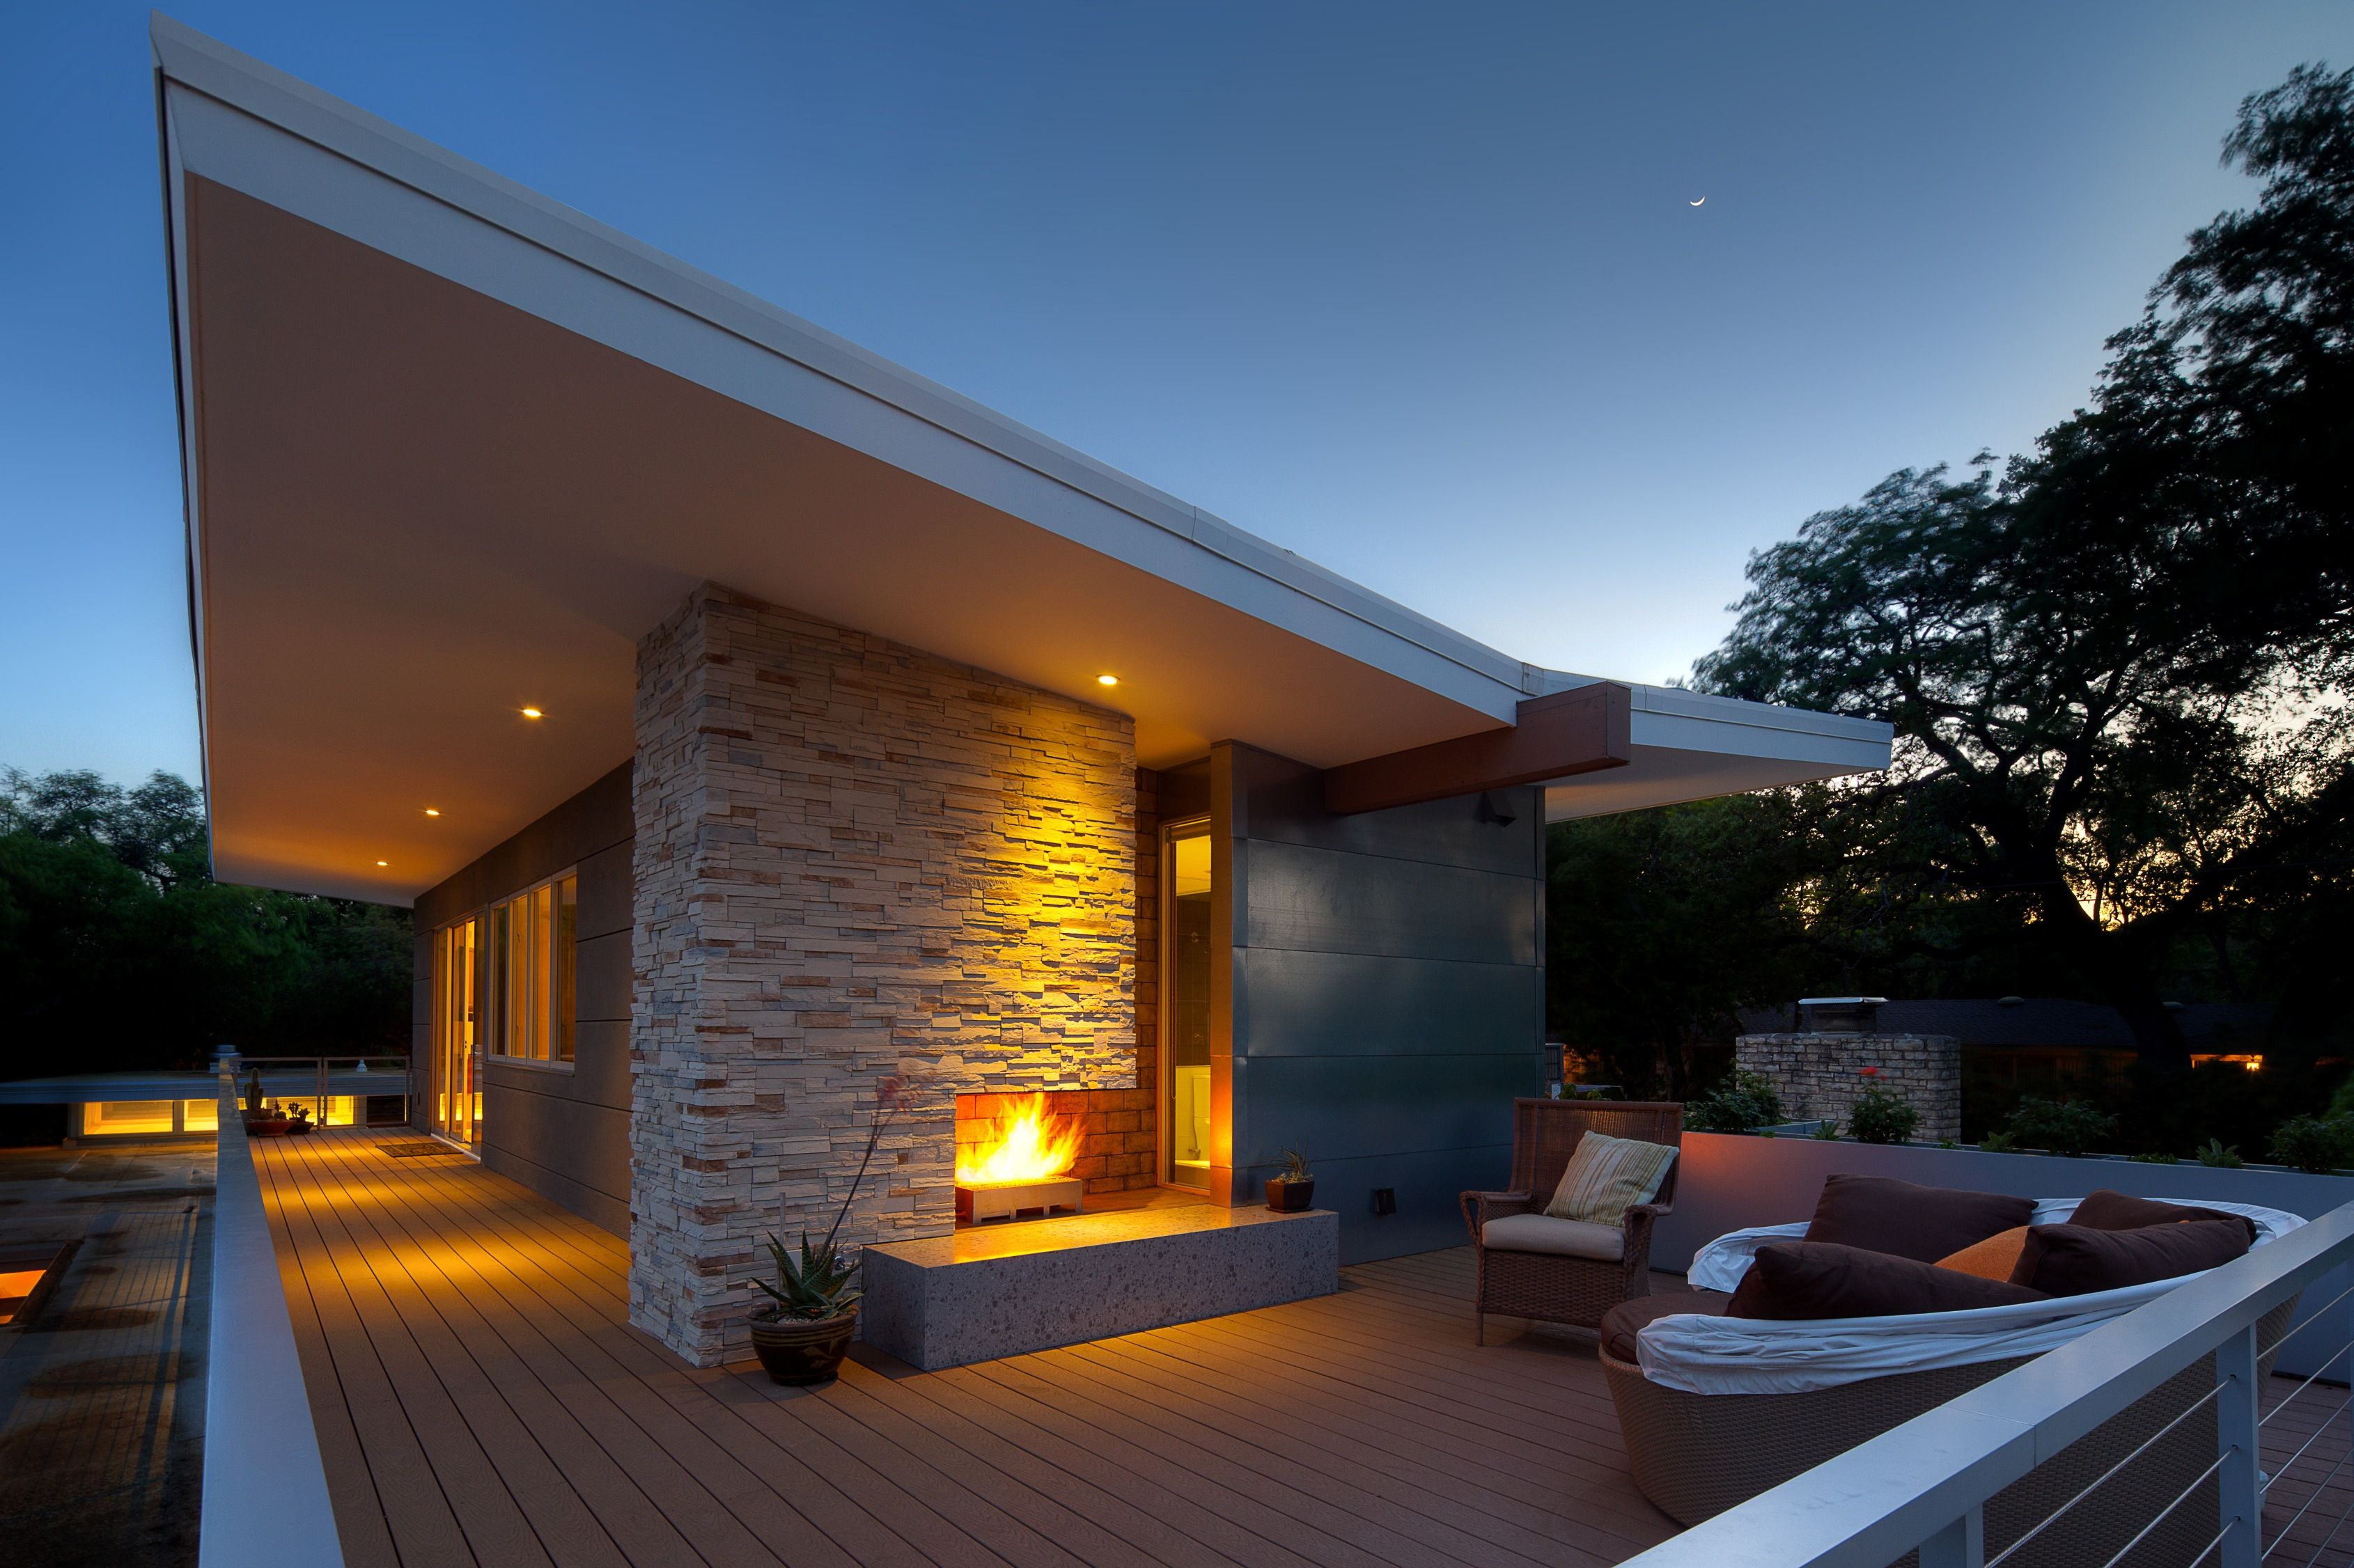 on and modern see new architecture design ideas outdoor fireplace indoor interior view thru lovely room decor